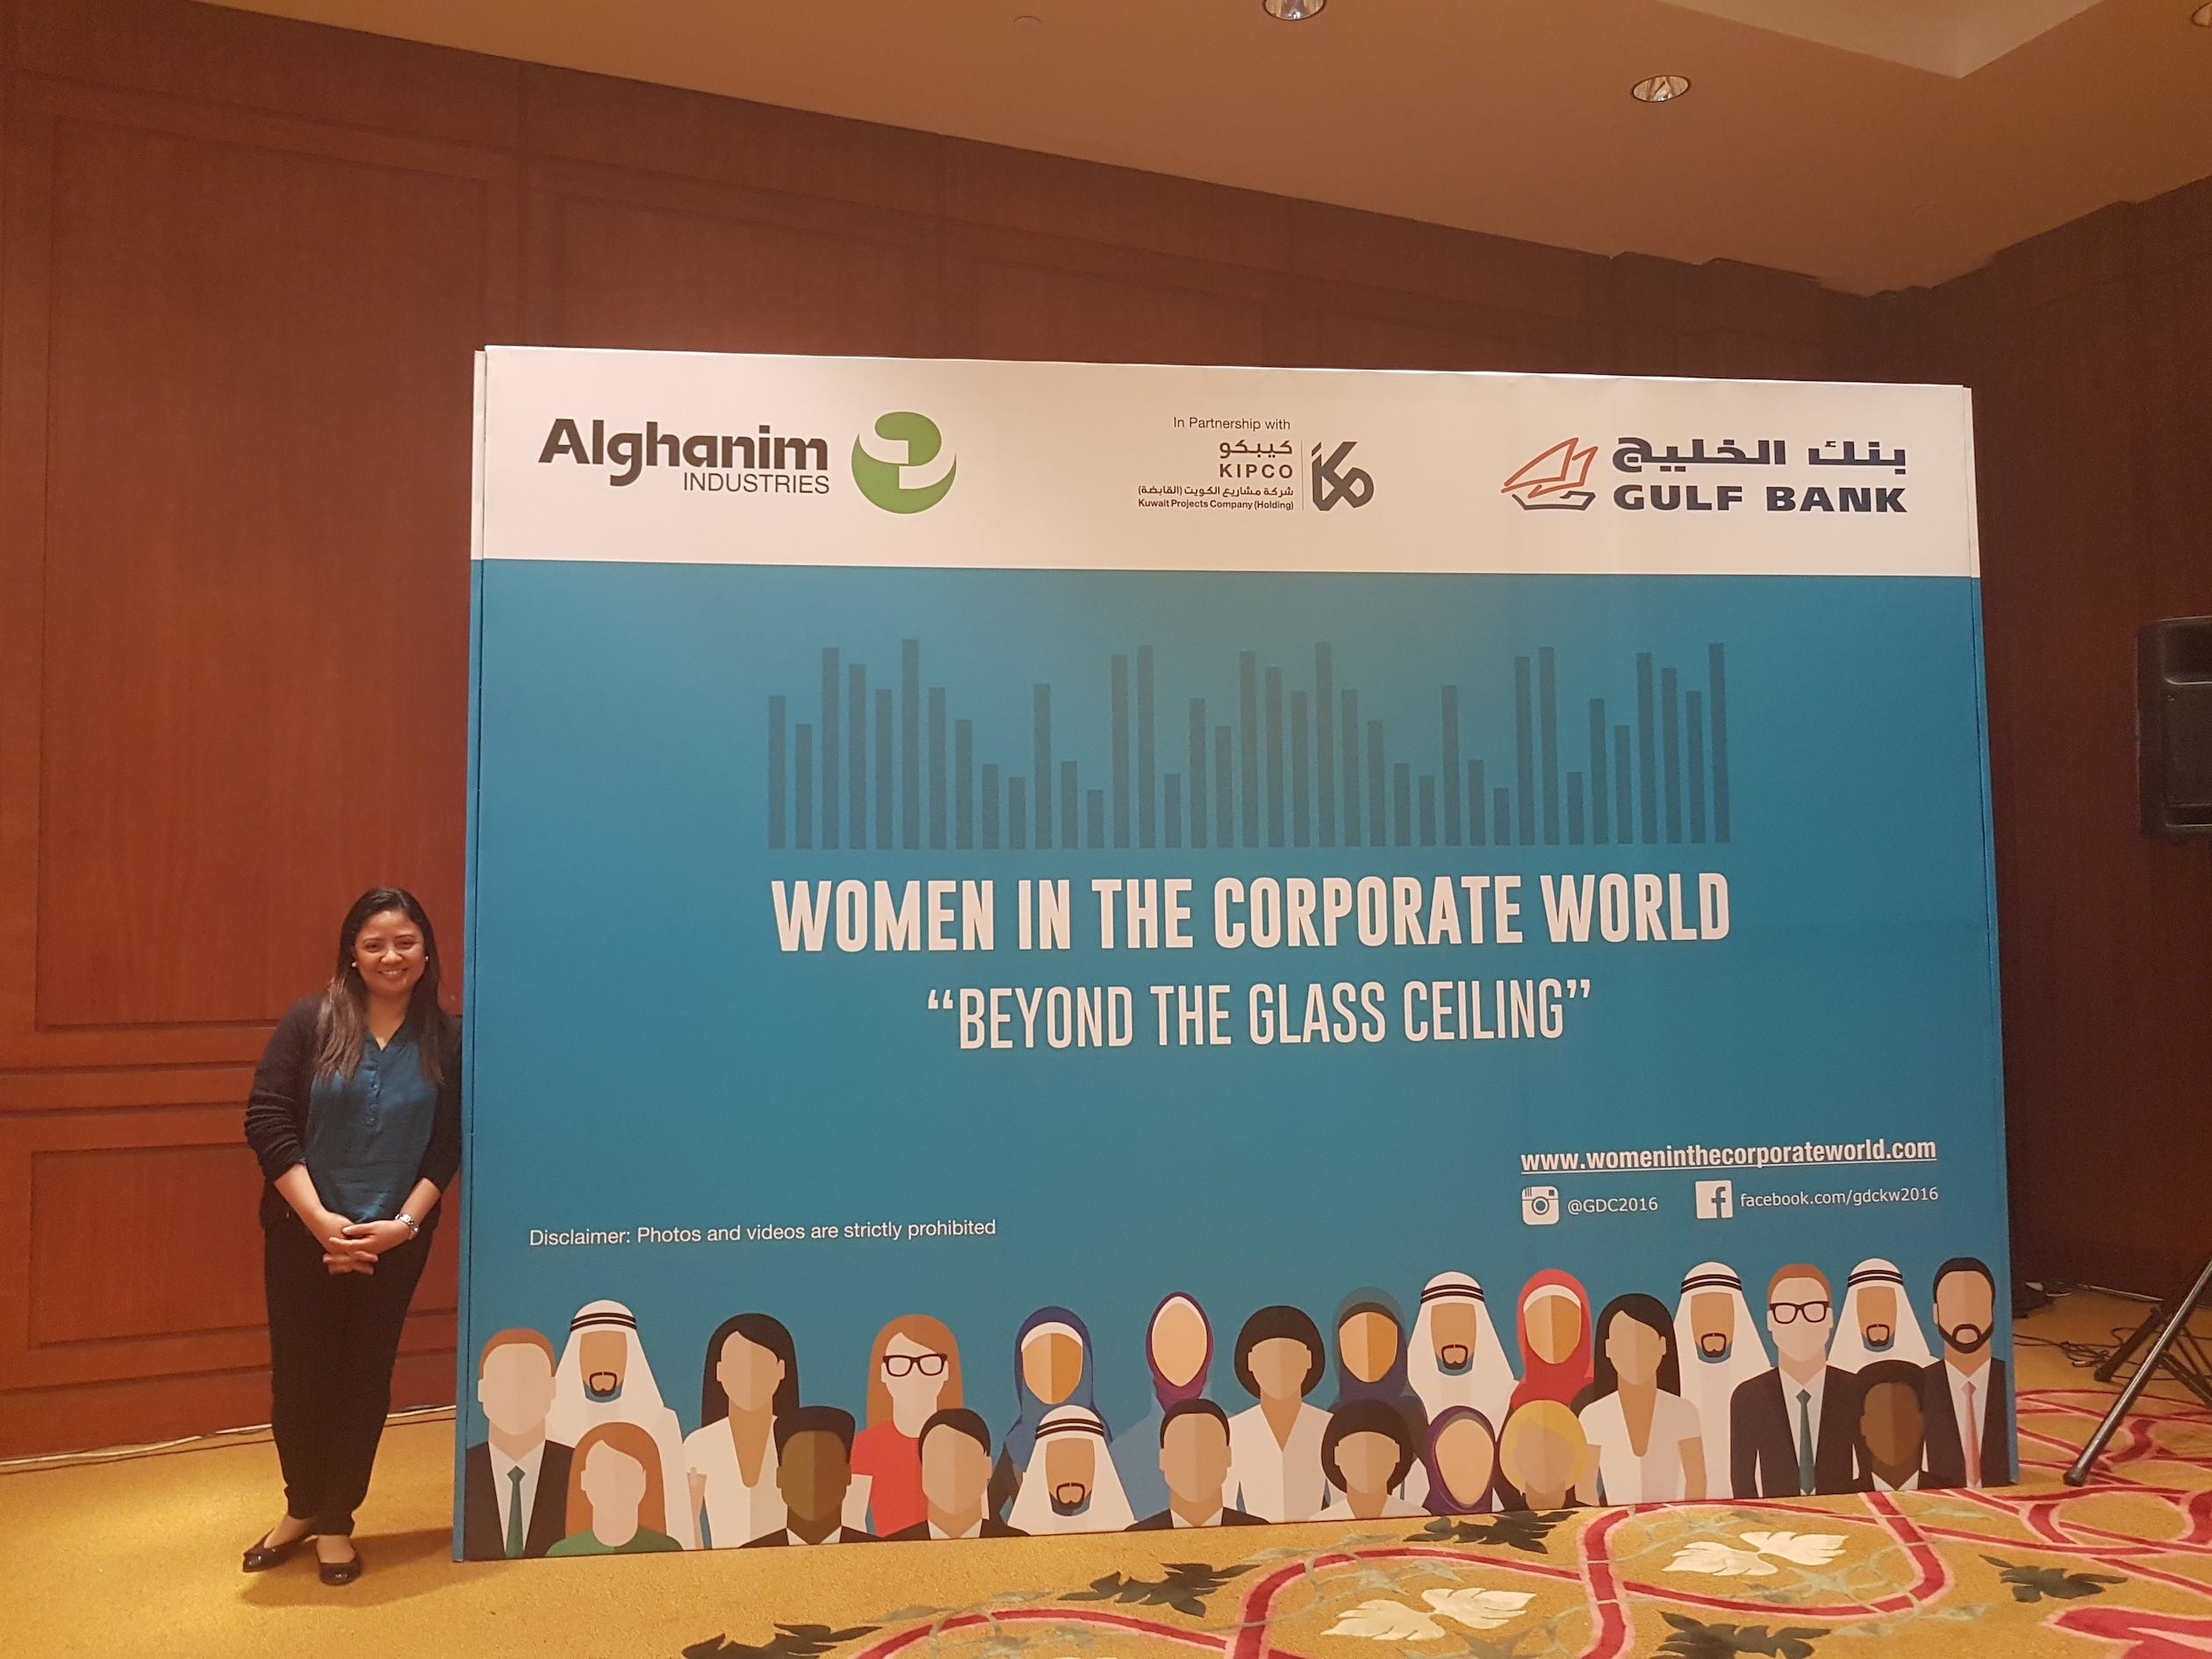 Women in the Corporate World: Beyond the Glass Ceiling